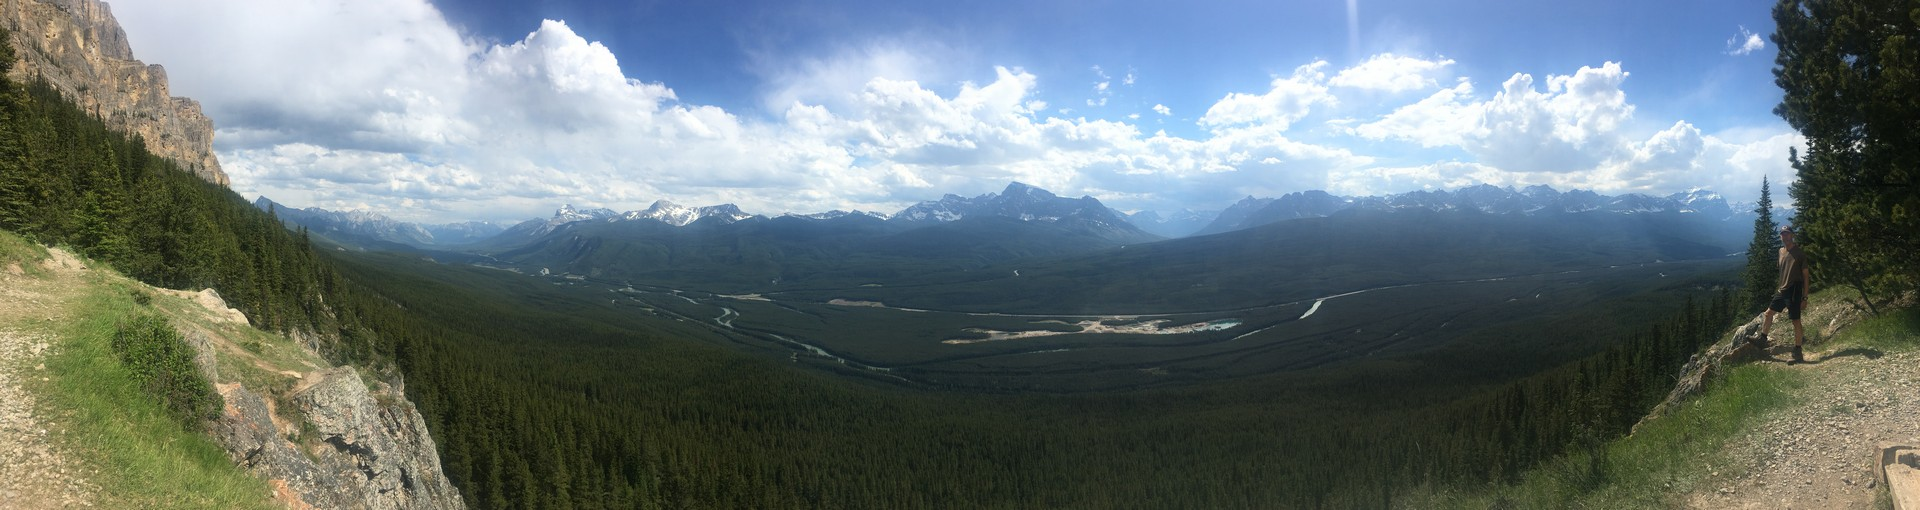 2017-06-26 Castle Mountain-29